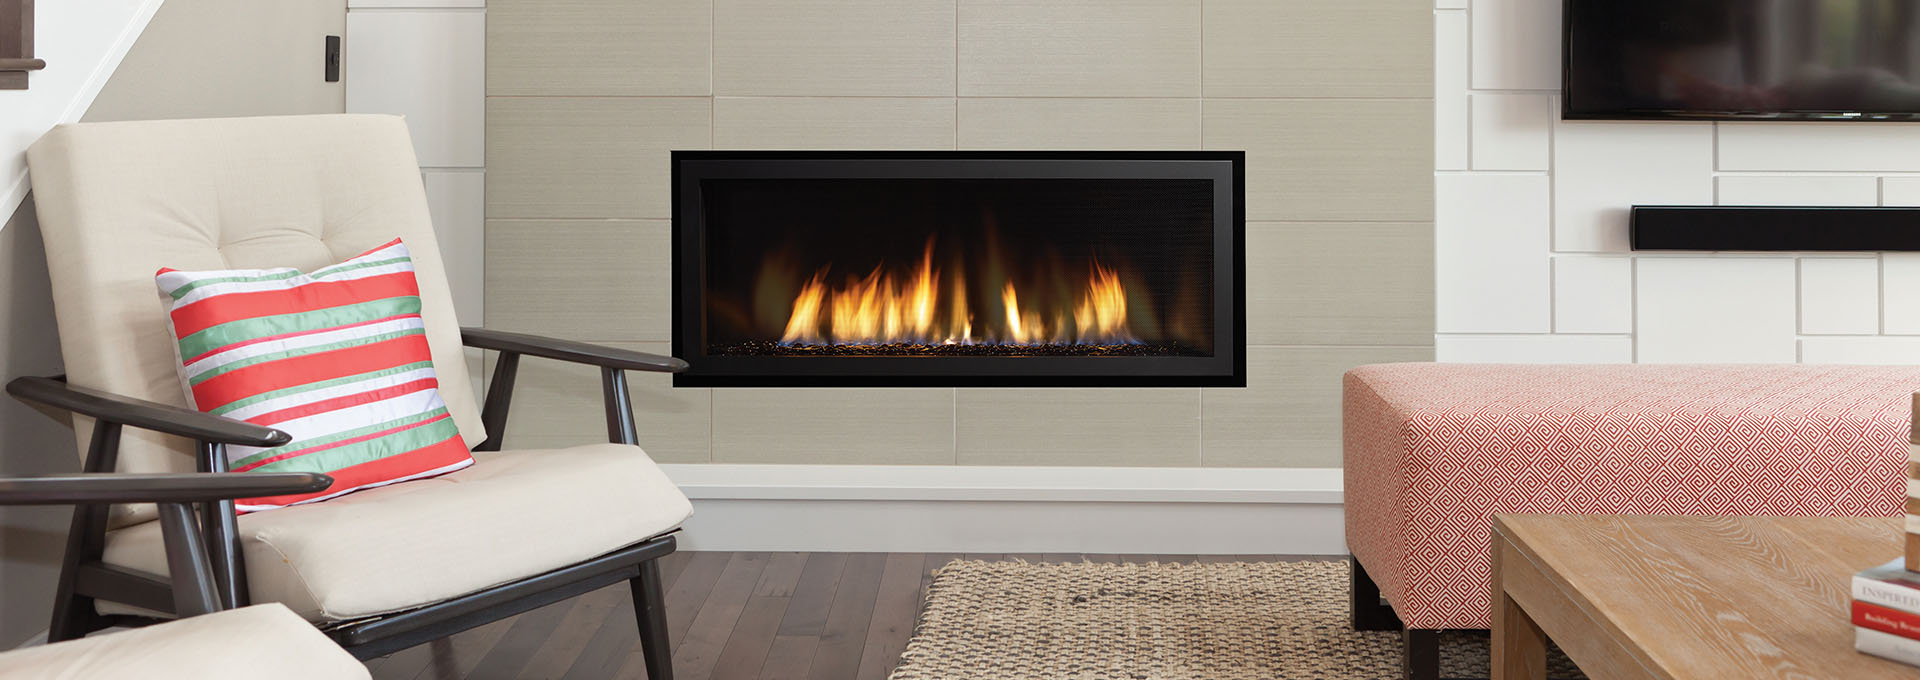 Gas Fireplace Insert Vs Wood Burning Installation